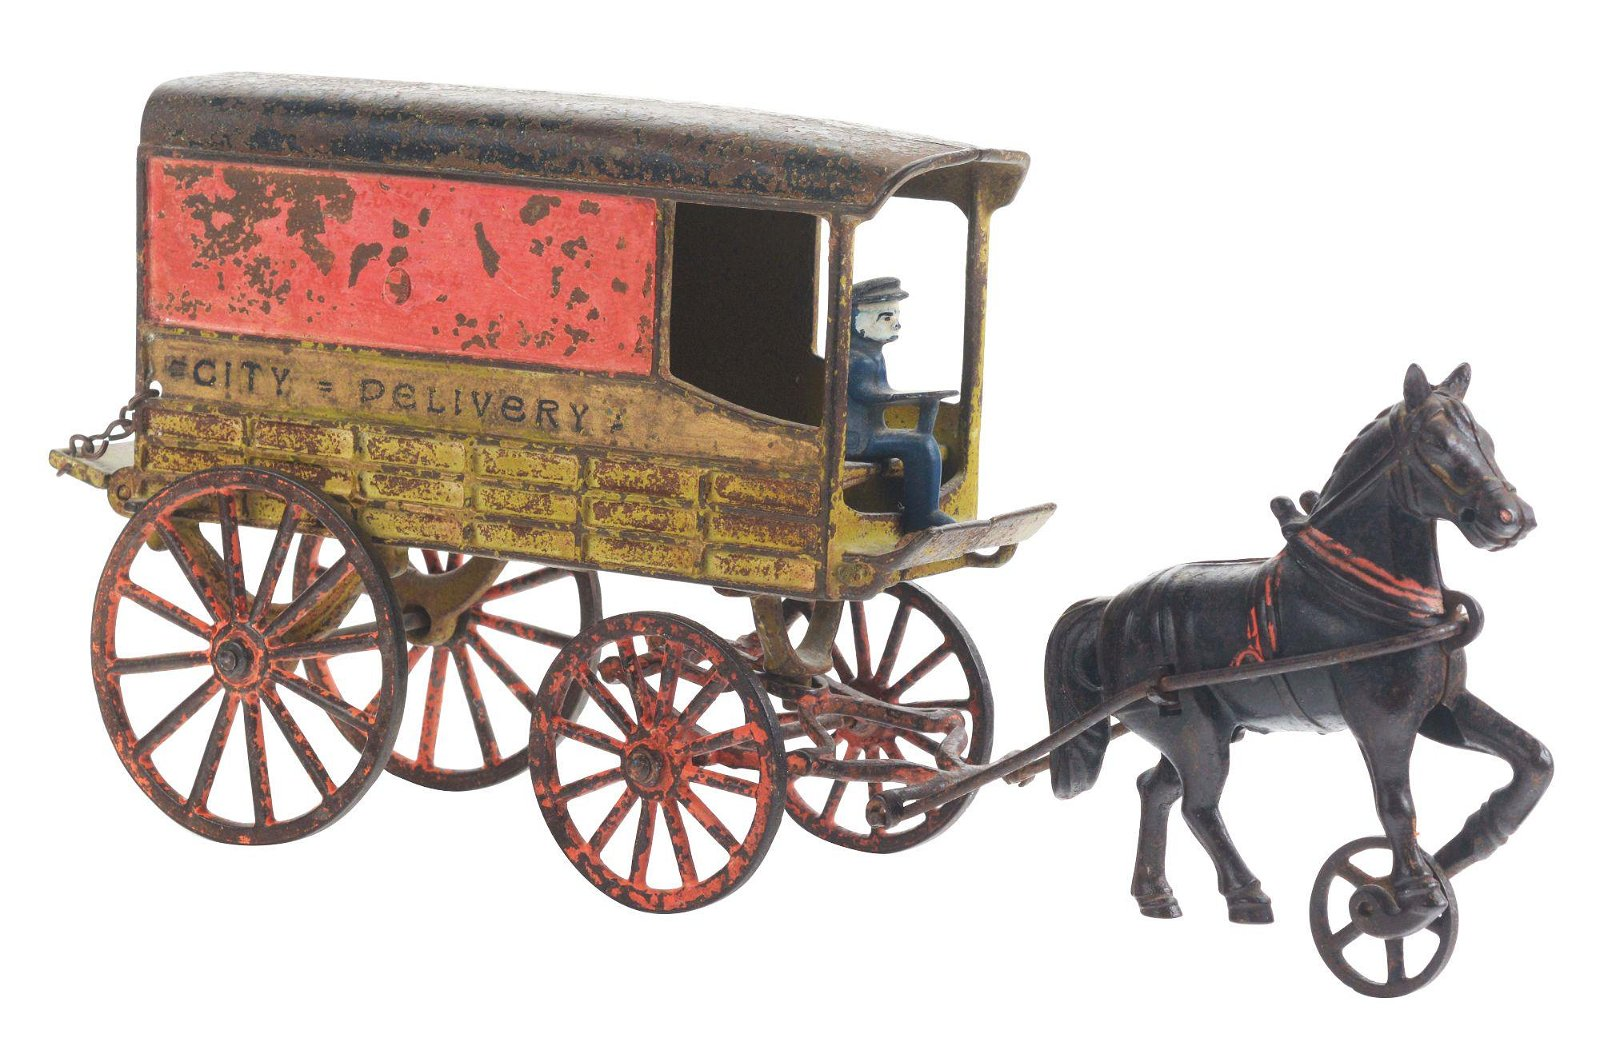 HARRIS ONE HORSE DRAWN CAST IRON CITY DELIVERY WAGON.